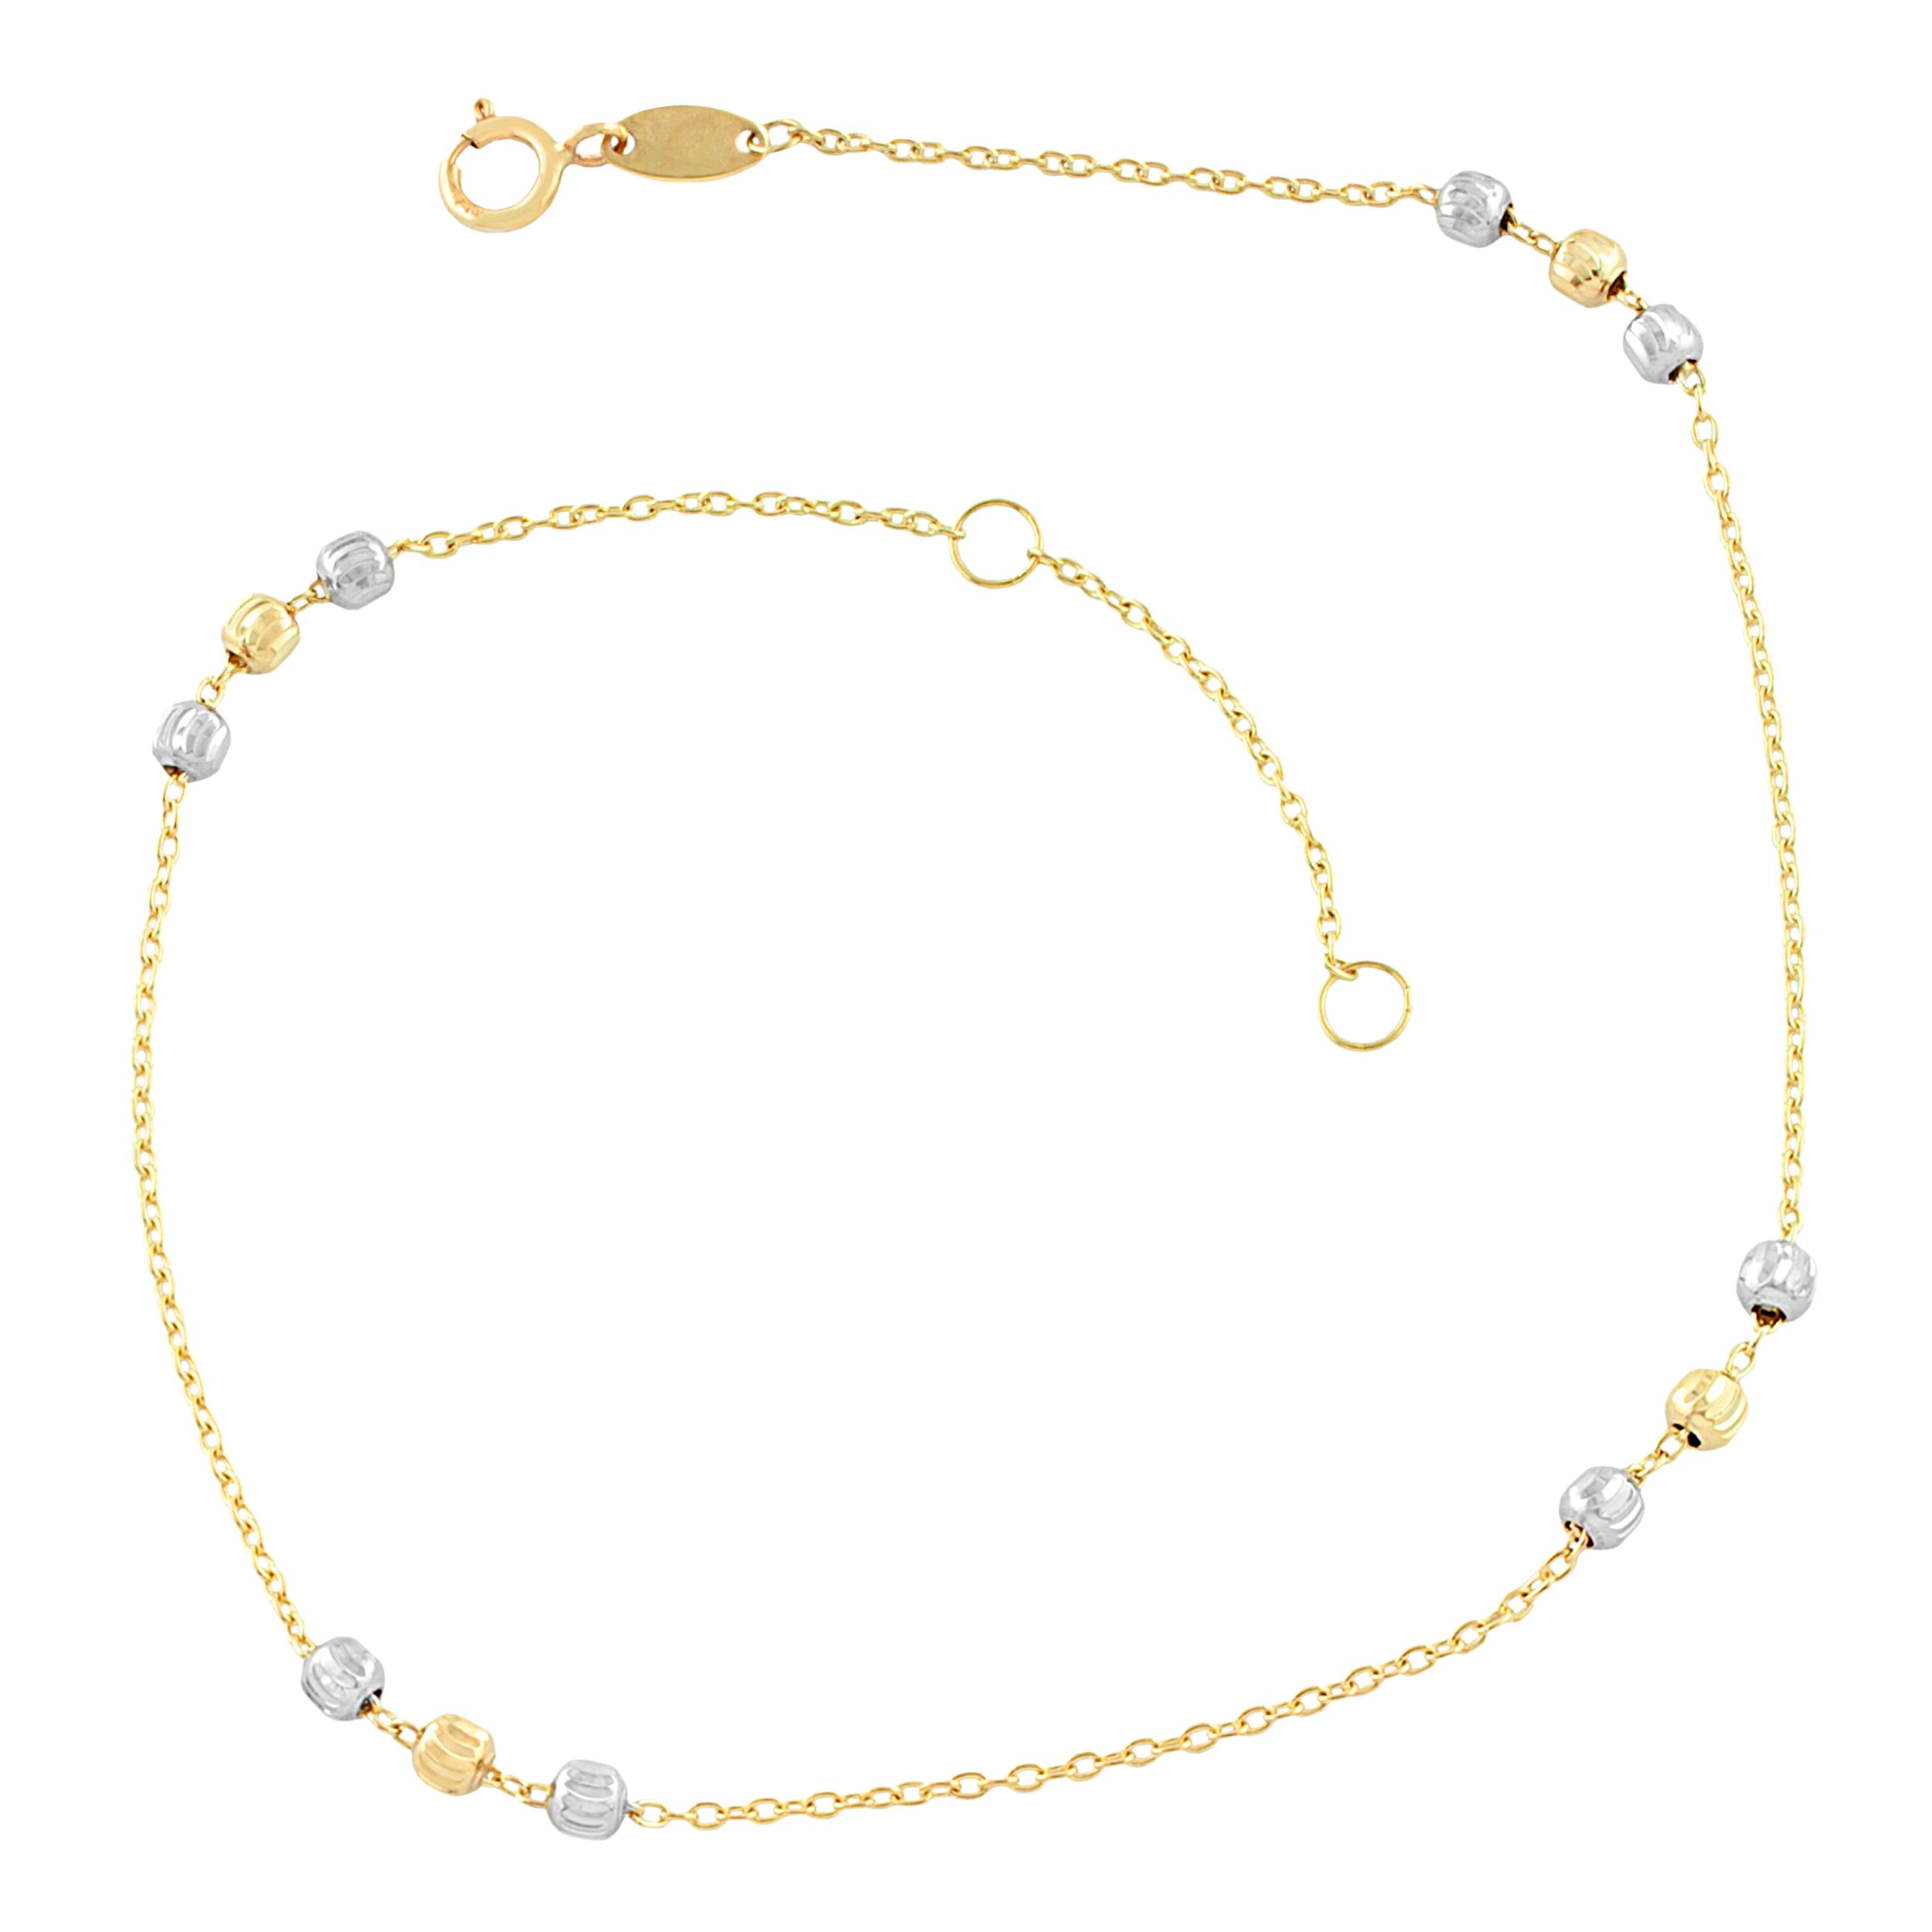 10k Two-Tone Gold Bead Station Anklet (fits 9'' or 10'')